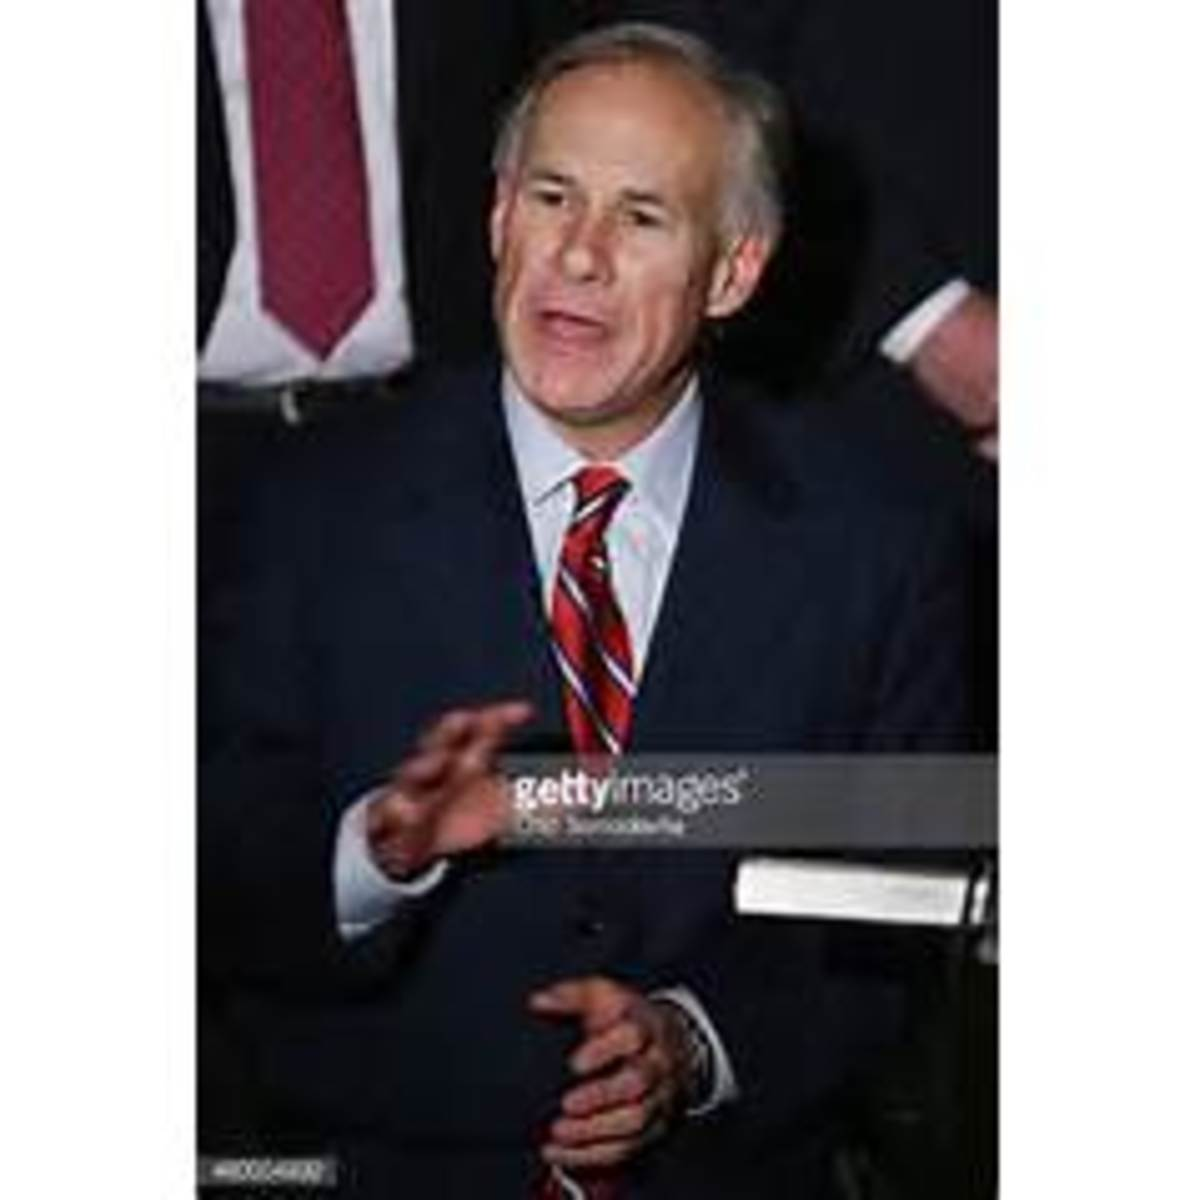 Texas Governor Greg Abbott promised war on Sanctuary Cities in Texas withholds funds from Austin, Texas.